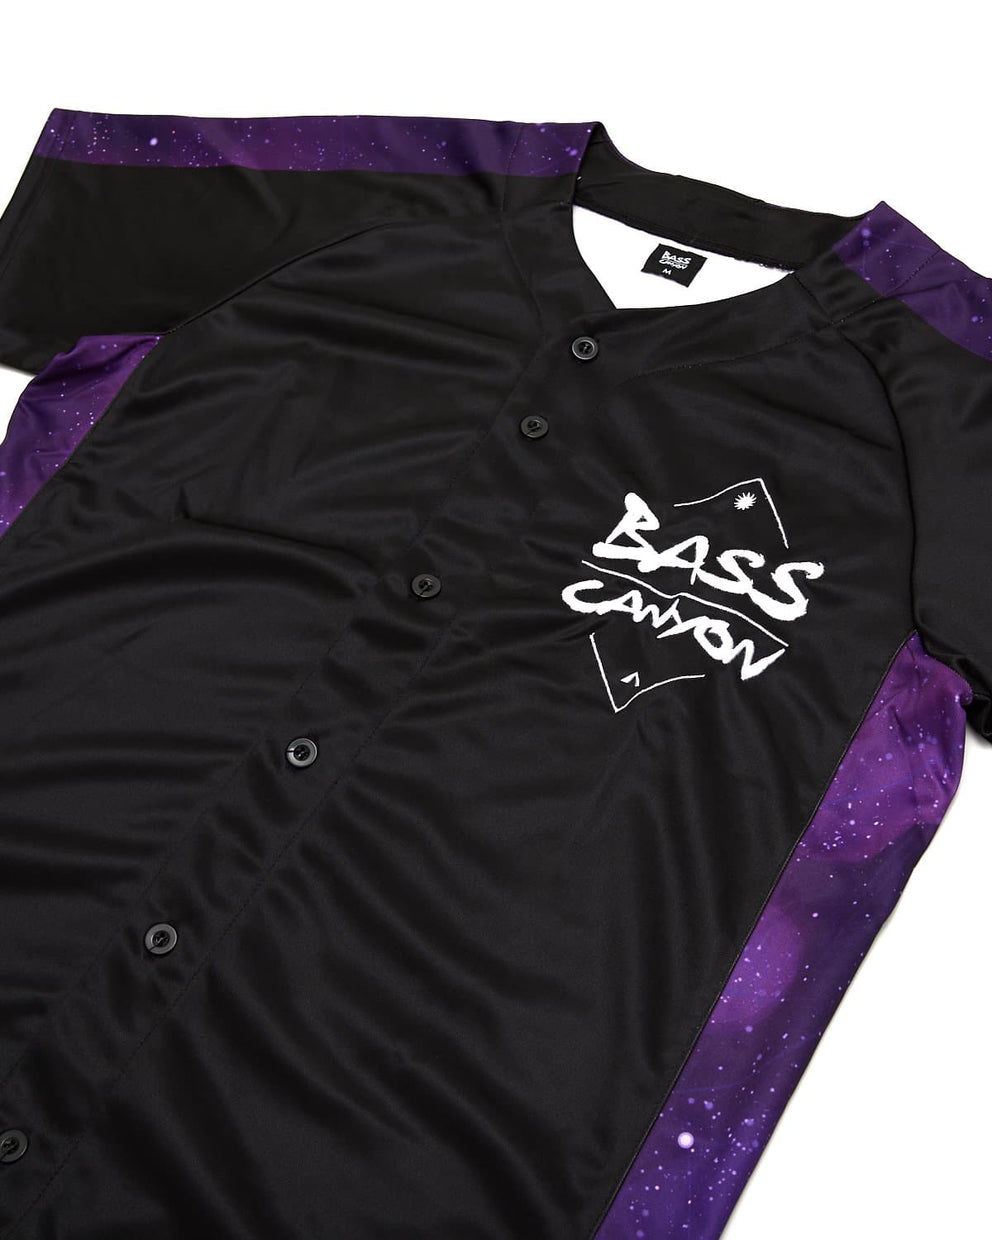 Excision 'Bass Canyon' Baseball Jersey - Black/Purple